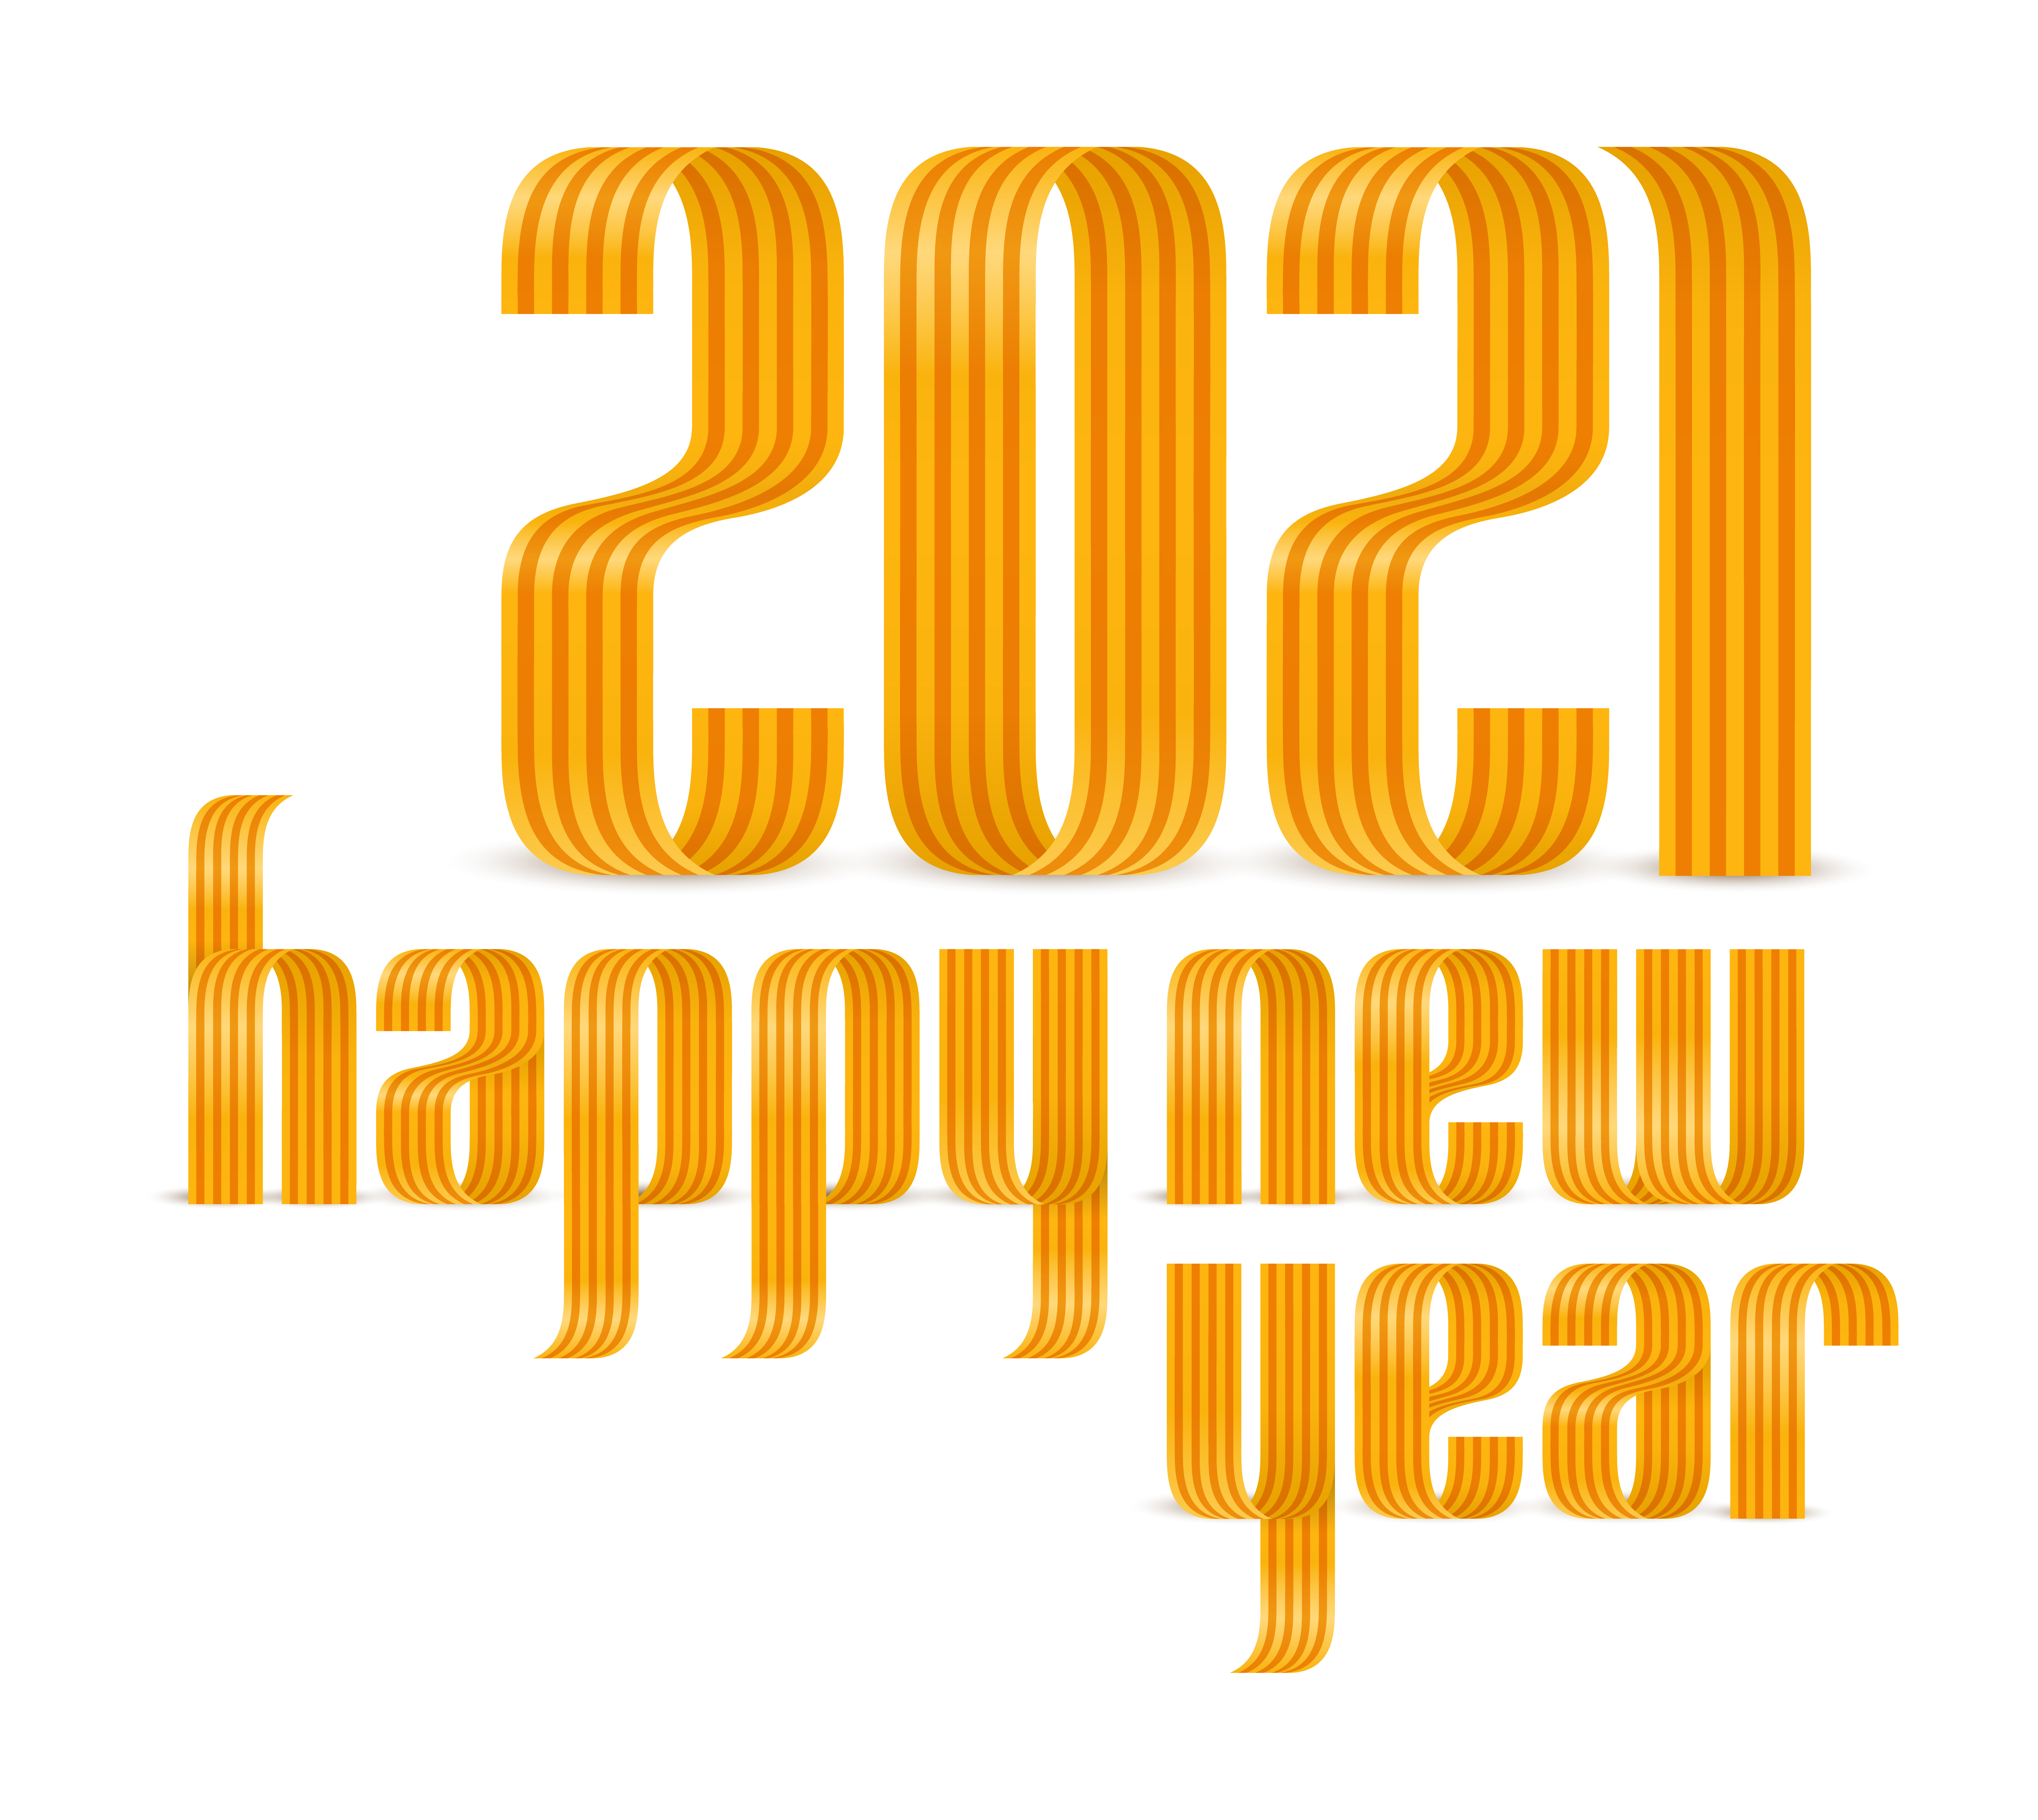 2021 Christmas White Background 2021 Happy New Year Gold Yellow Ribbon Font On White Background Merry Christmas And Happy New Year Greeting Card Banner 1918376 Vector Art At Vecteezy